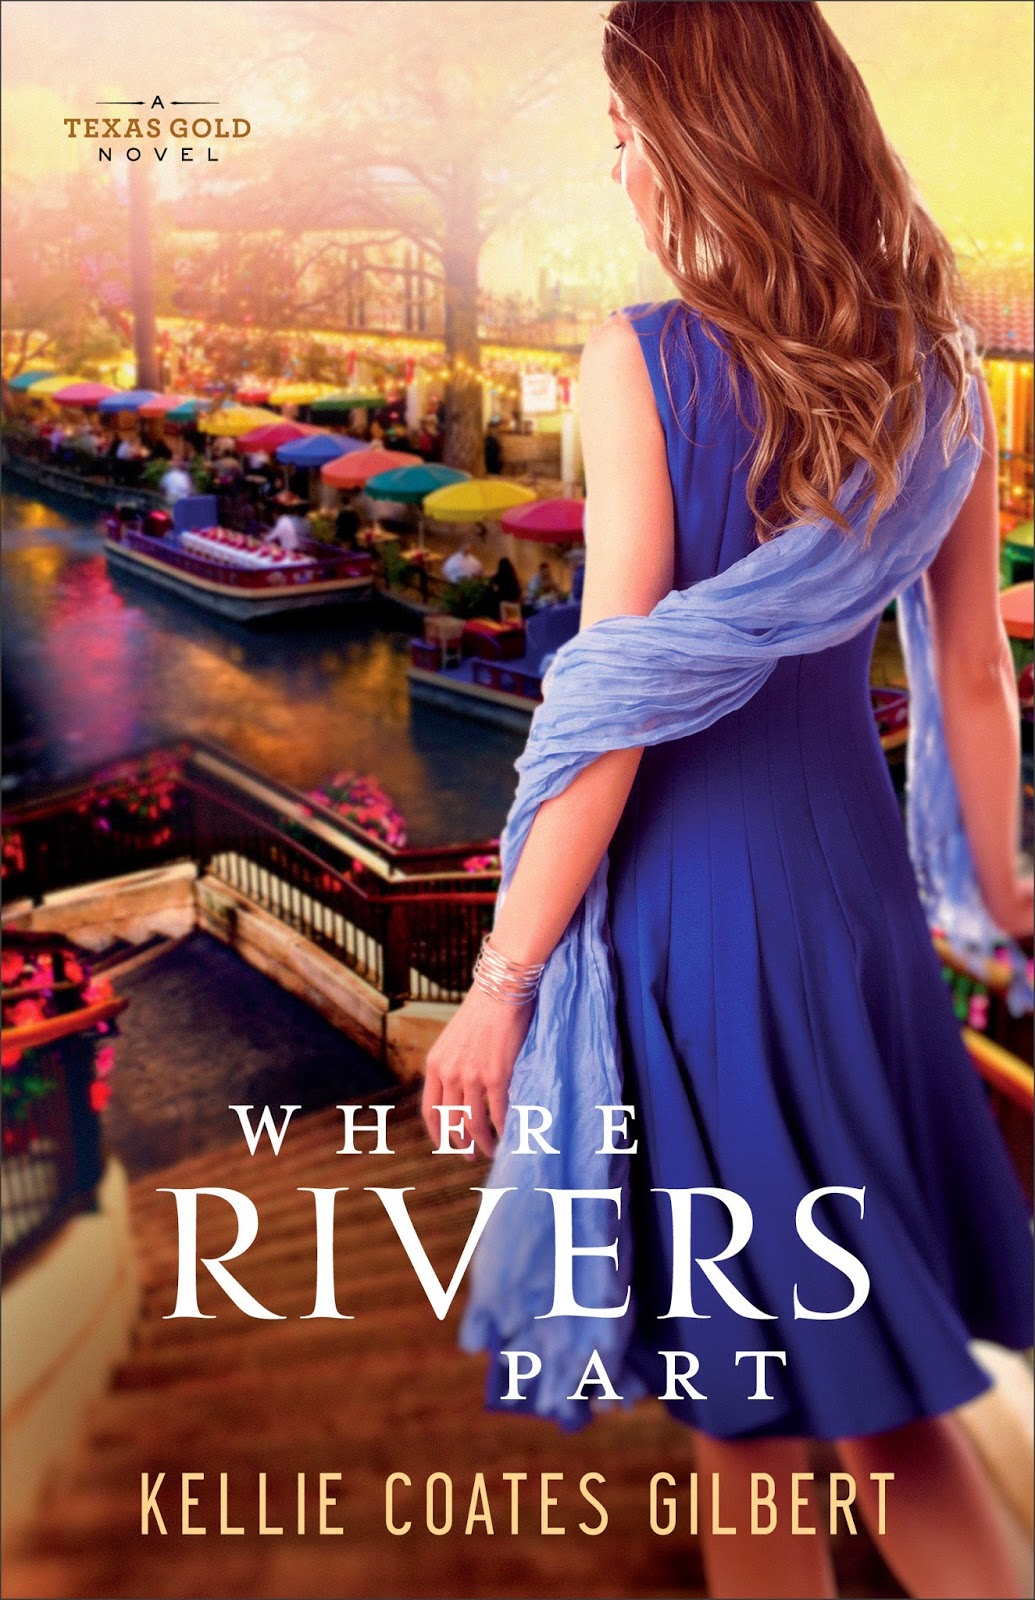 Where Rivers Part (Texas Gold Collection) by Kellie Coates Gilbert